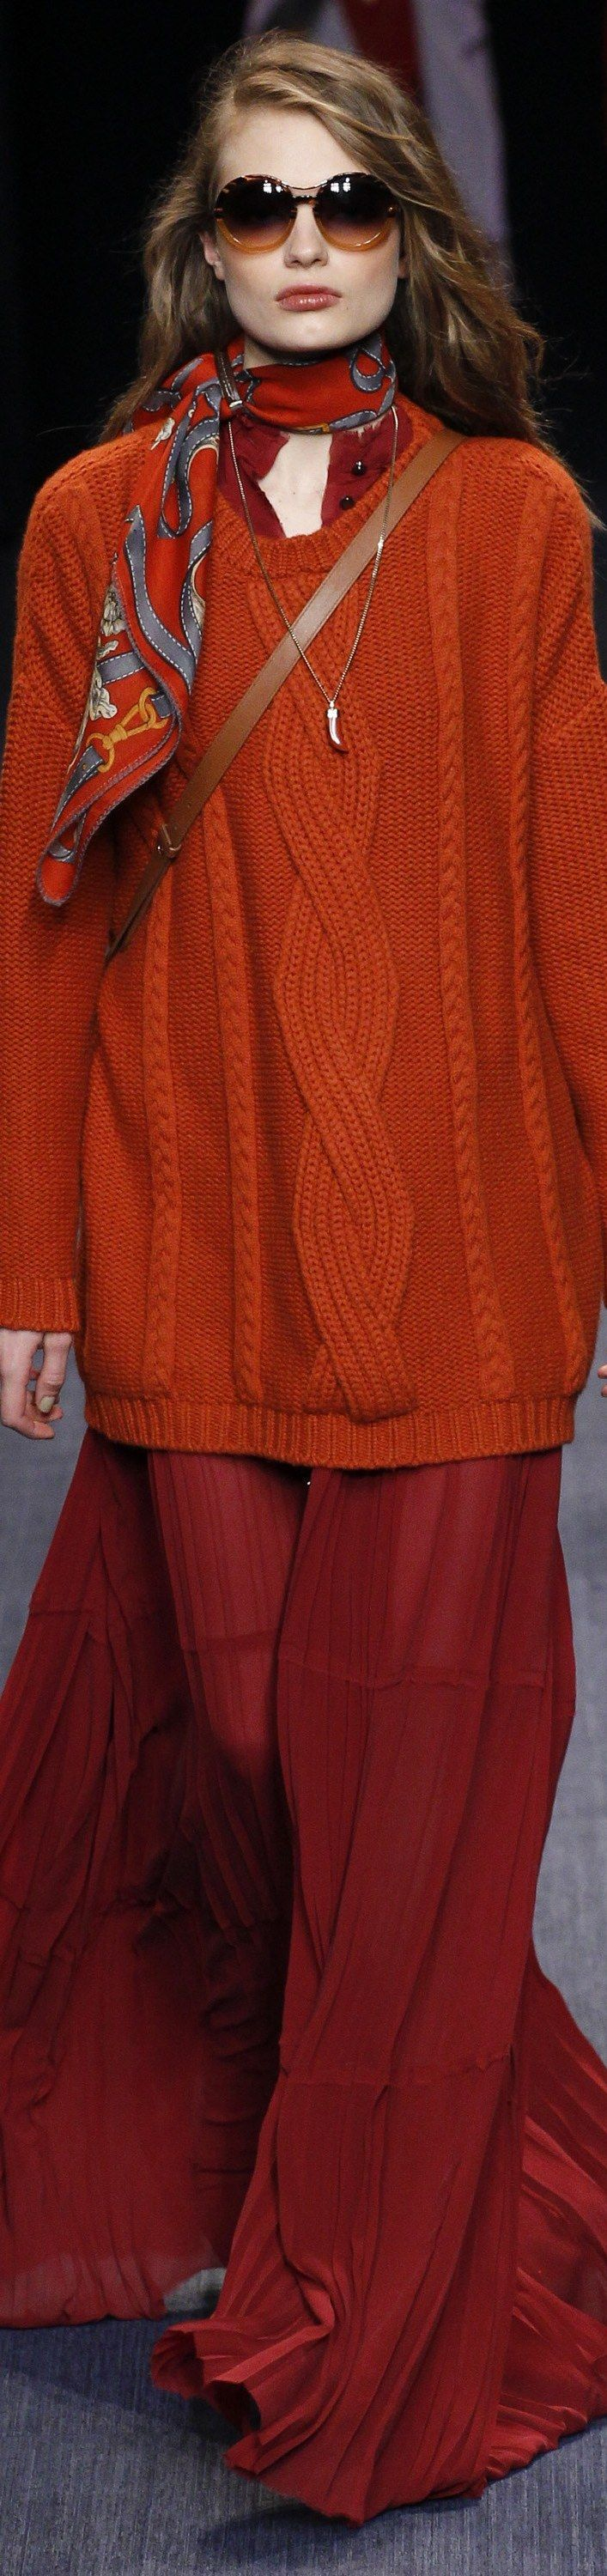 Trussardi - FALL 2016 READY-TO-WEAR